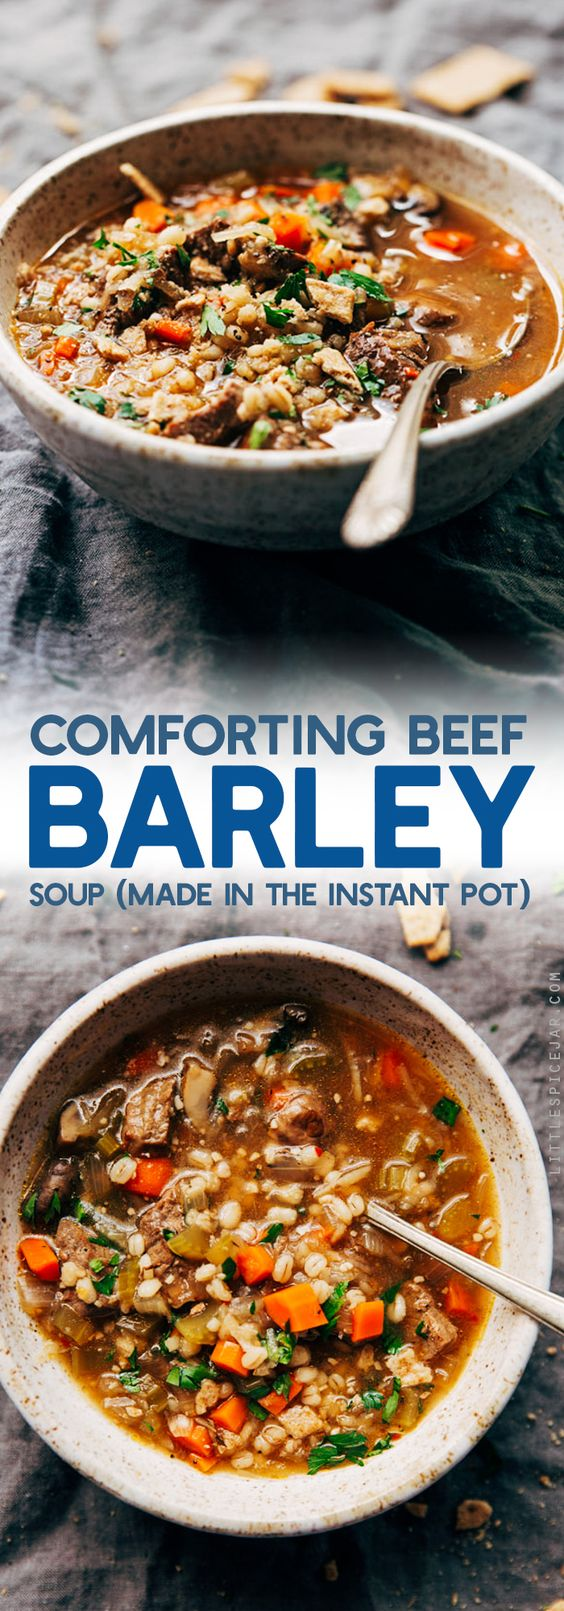 Comforting Beef Barley Soup Recipe